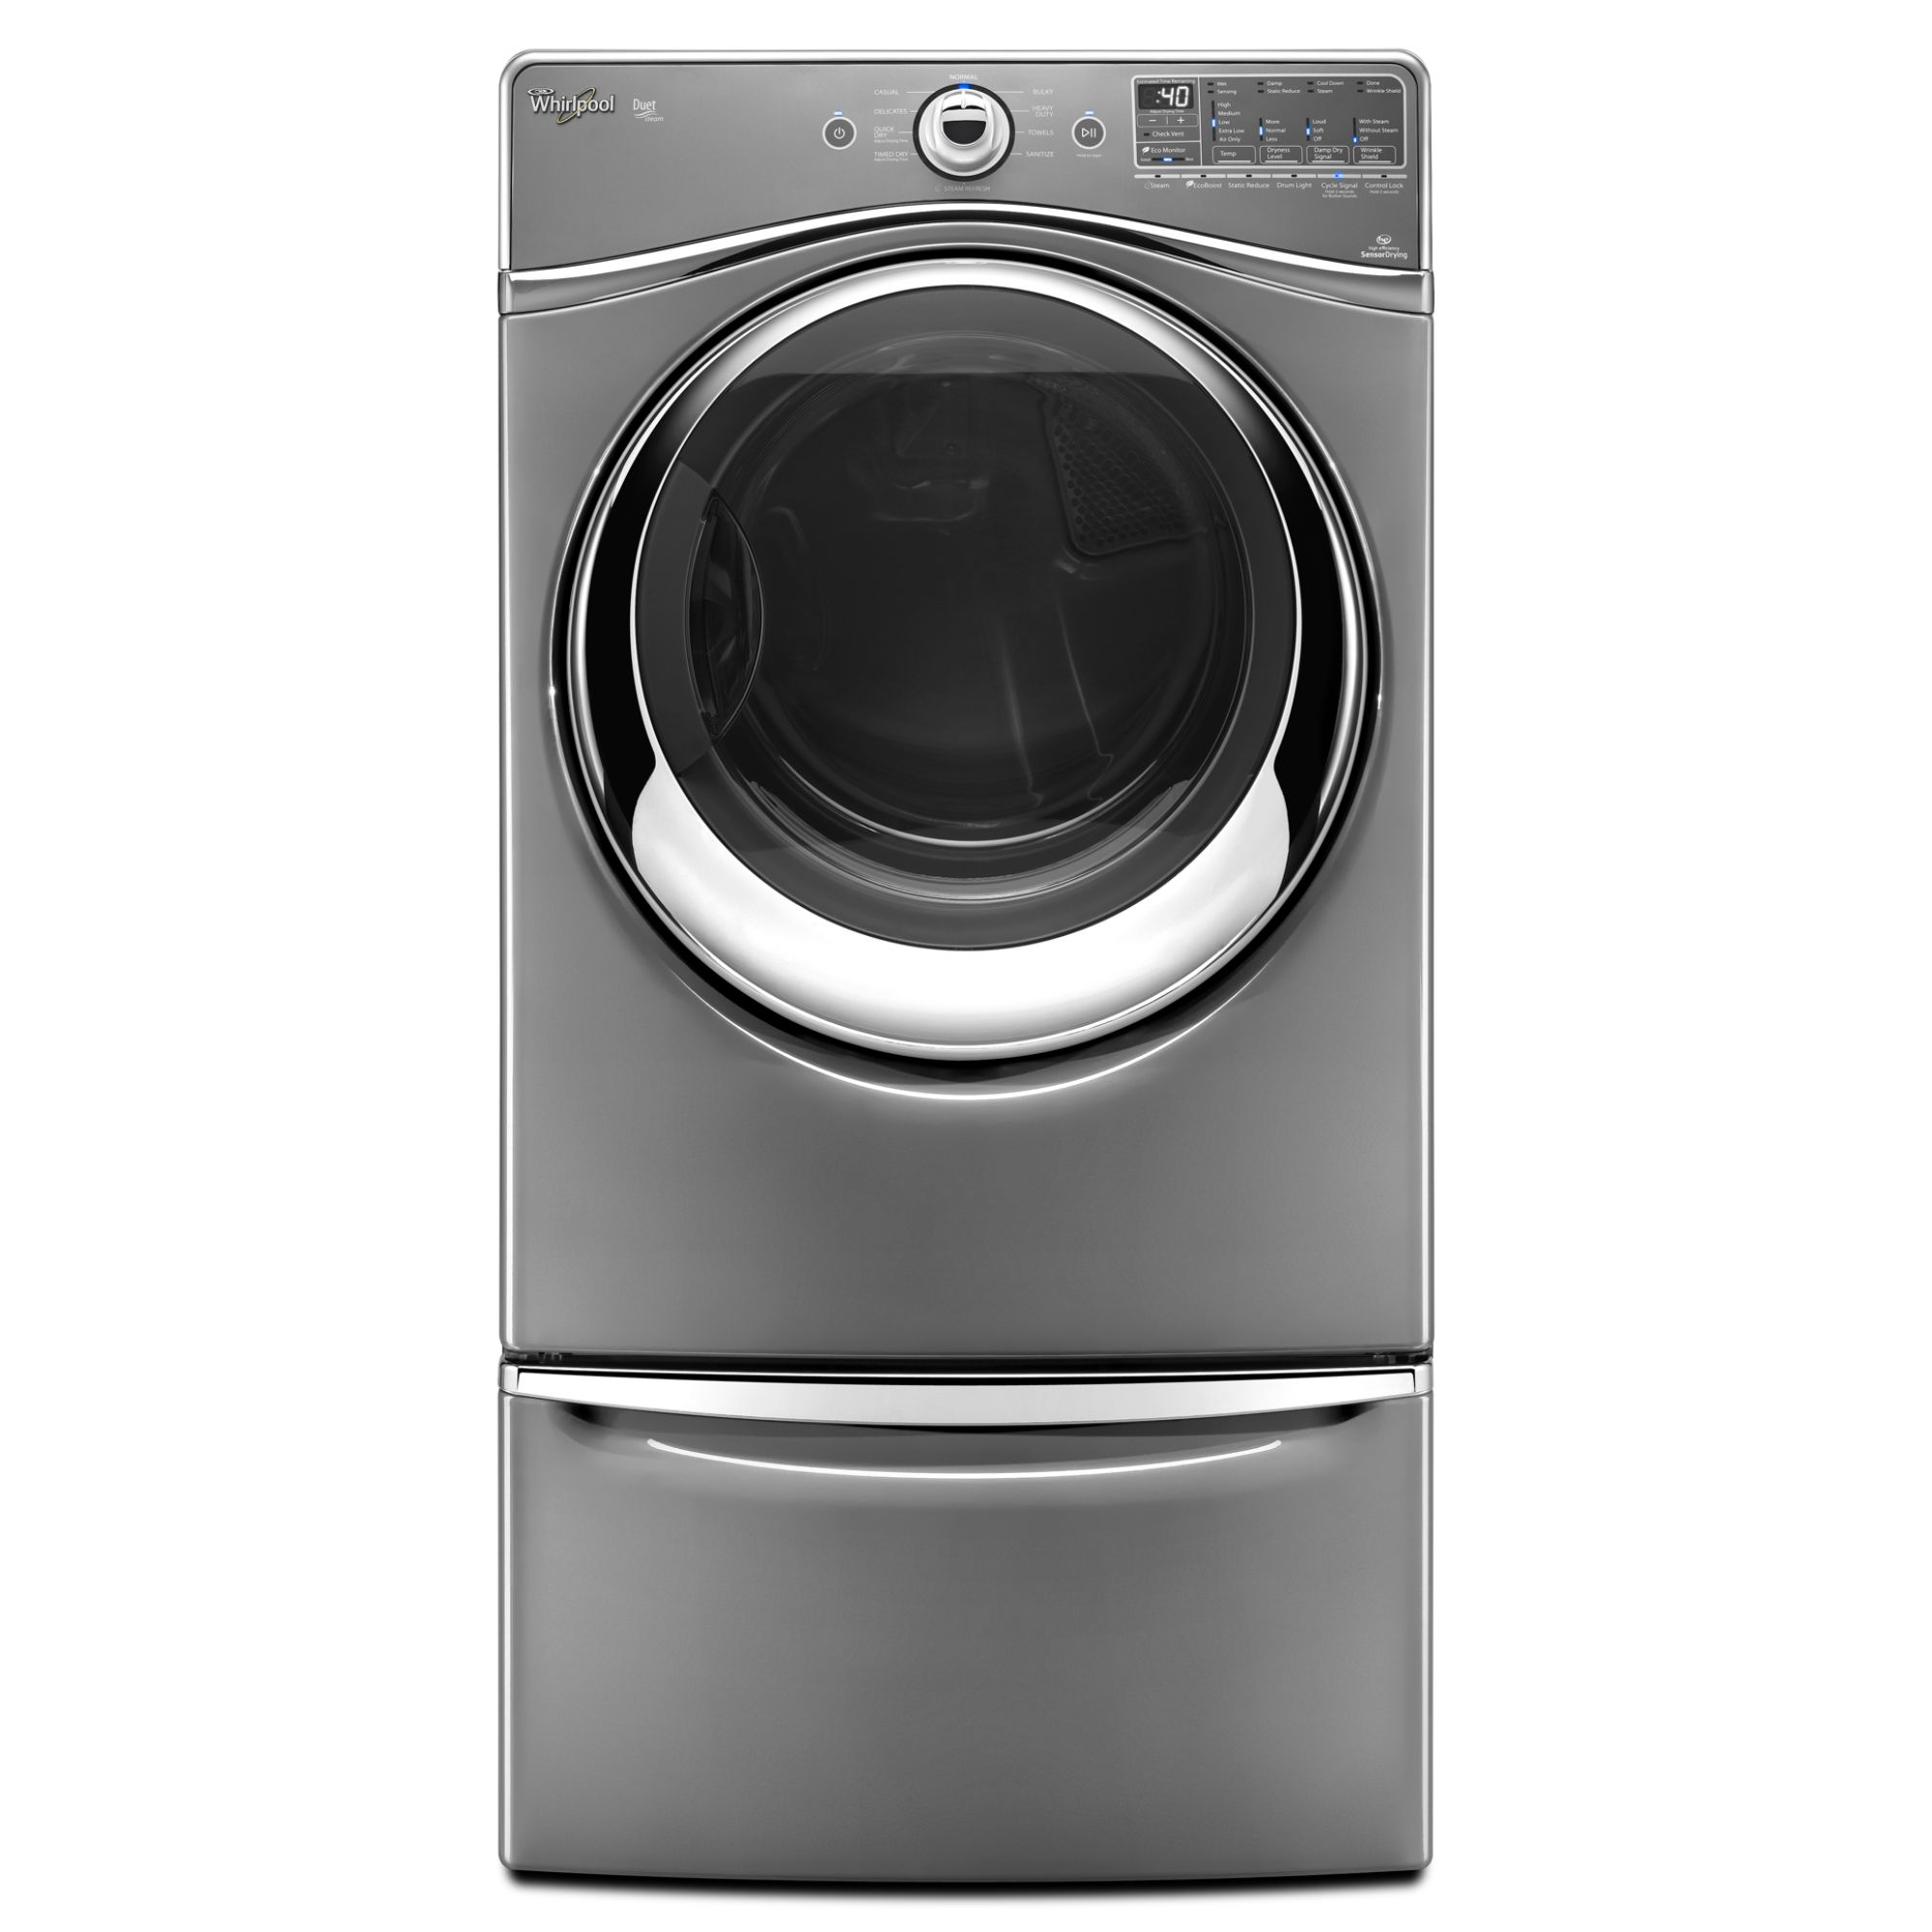 Whirlpool Duet® 7.4 cu. ft. Gas Dryer w/ Advanced Moisture Sensing - Chrome Shadow